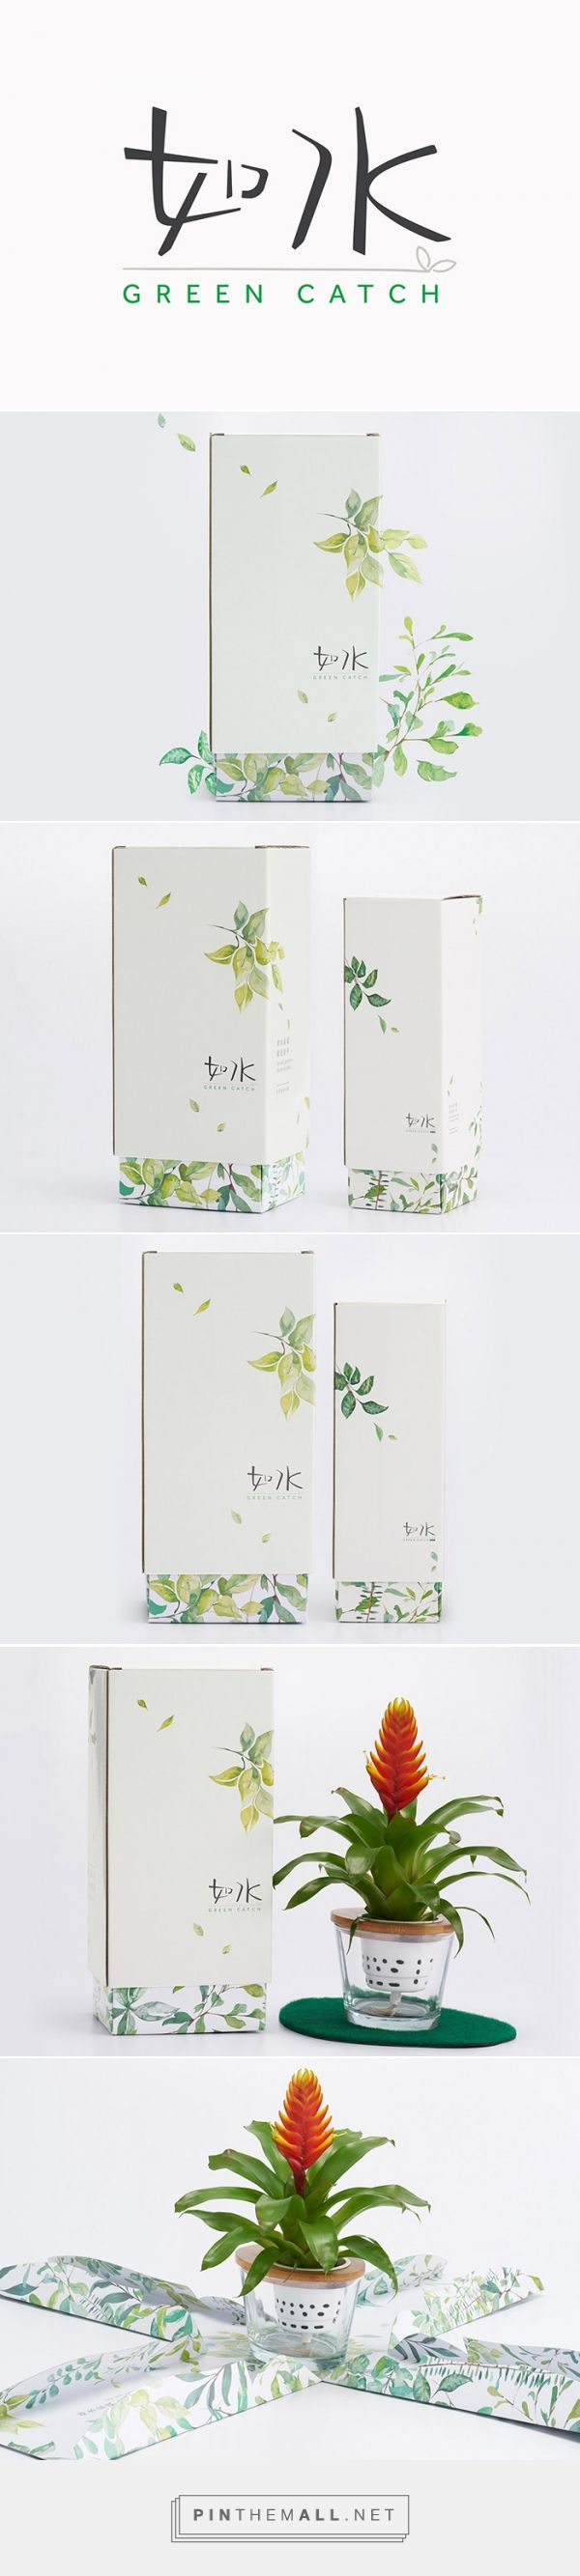 Green Catch plant packaging branding project by Box Brand Design Co. Source…